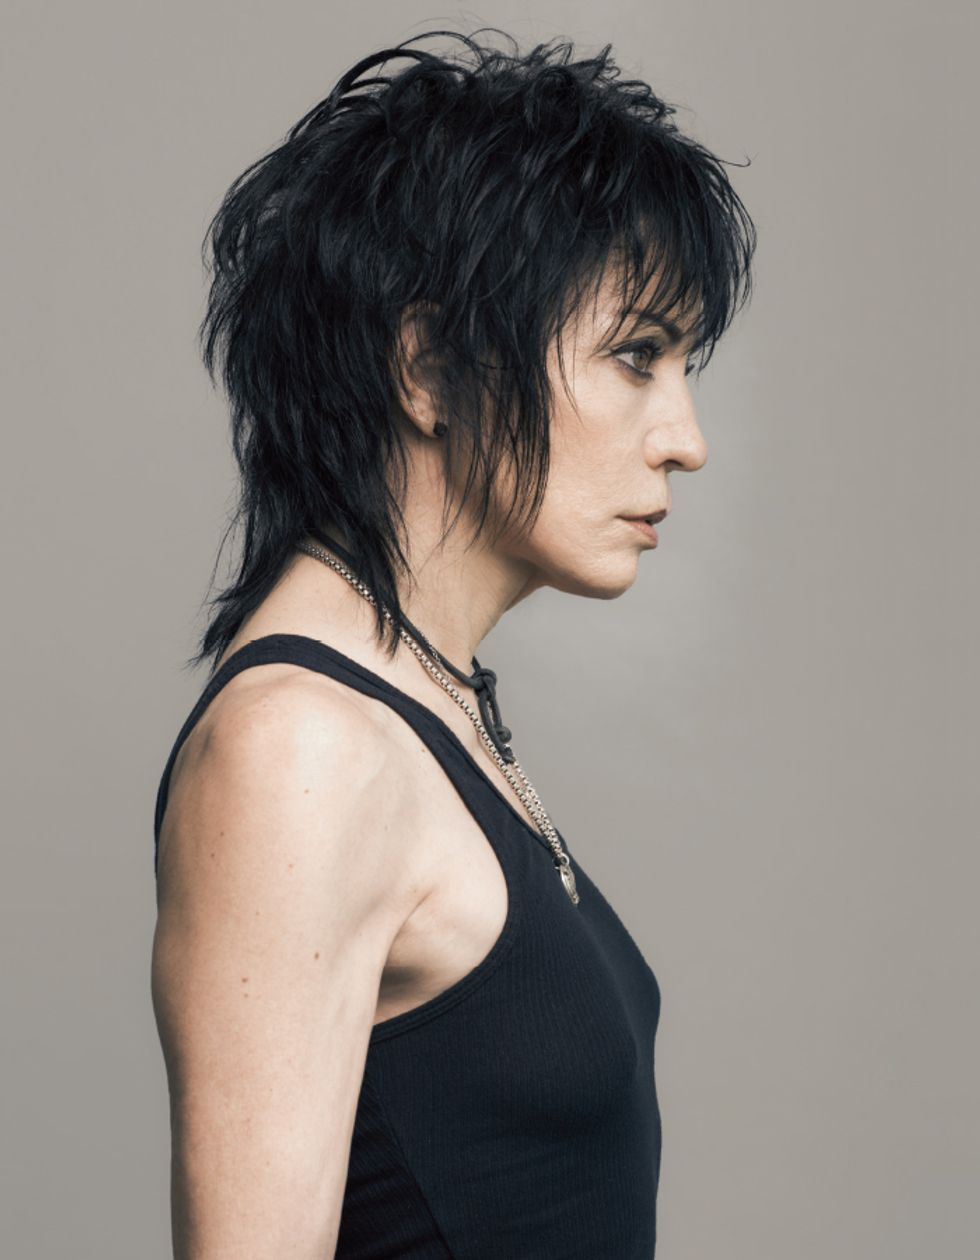 Use Your Voice: Joan Jett